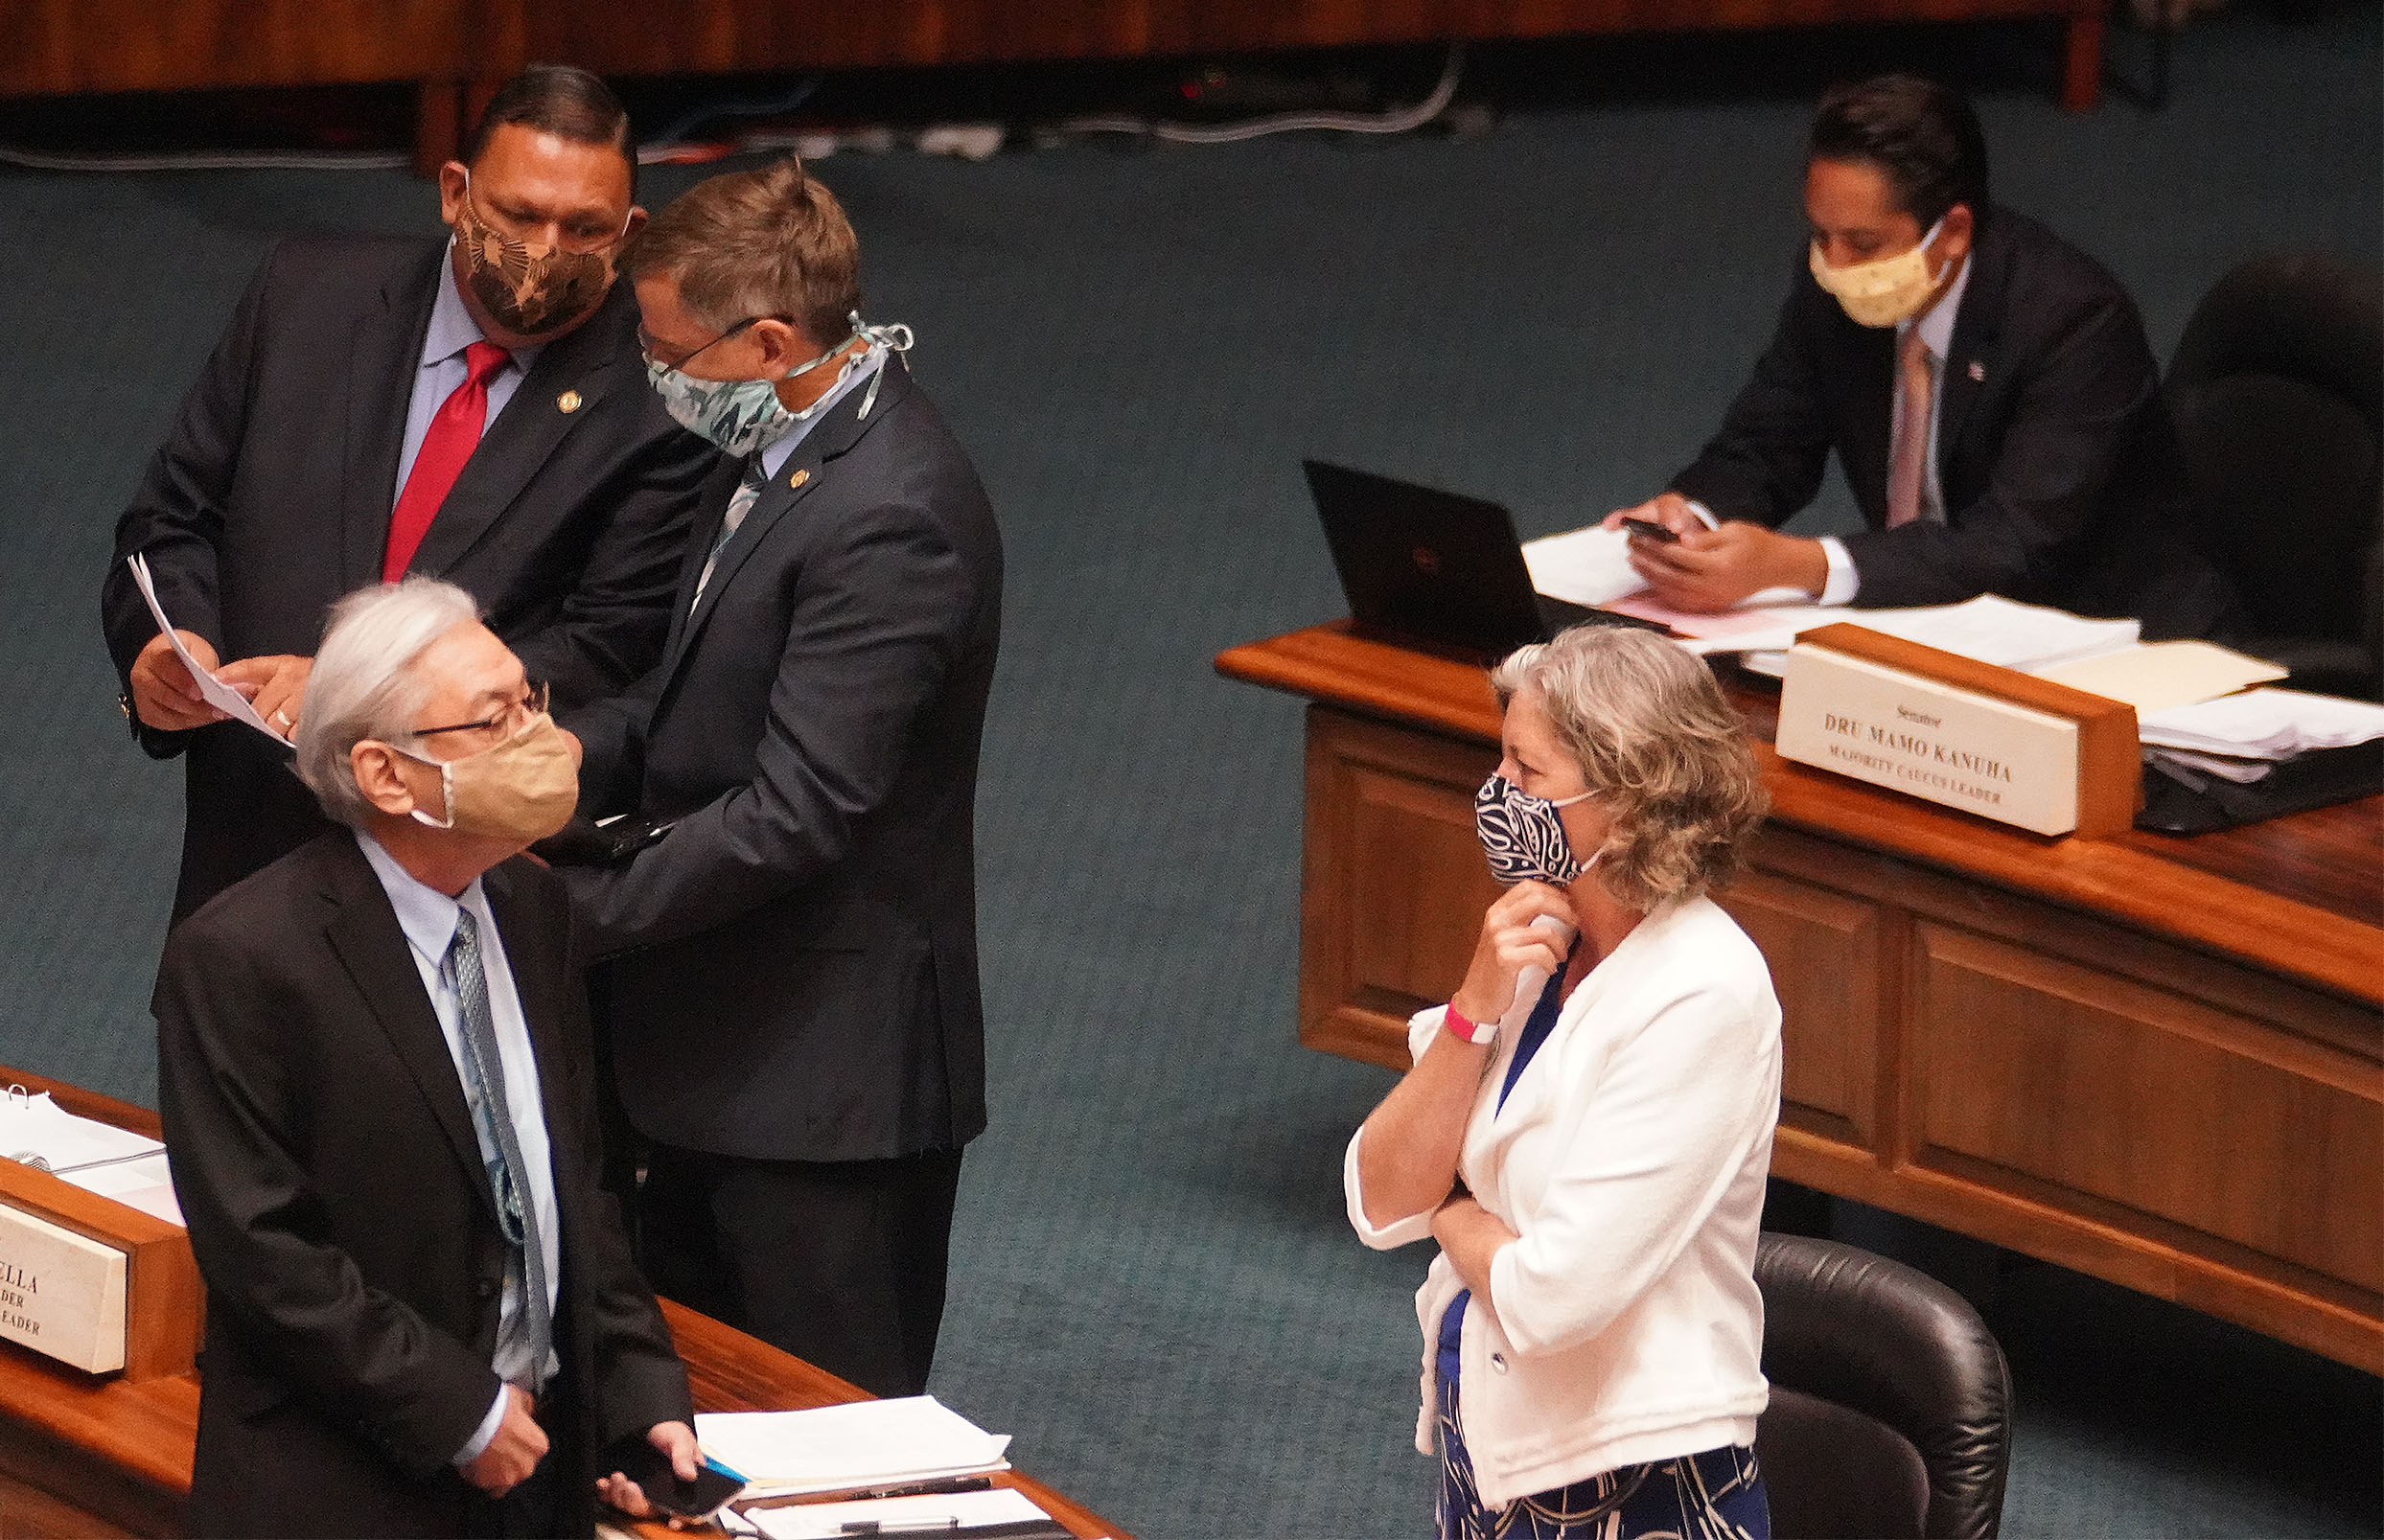 <p>The Legislature managed to still hold floor sessions during the COVID-19 pandemic. In the foreground, Sen. Laura Thielen shares a conversation with Sen. Les Ihara. In the background, Sen. Kurt Fevella, left, chats with Sen. Gil Riviere in July.</p>